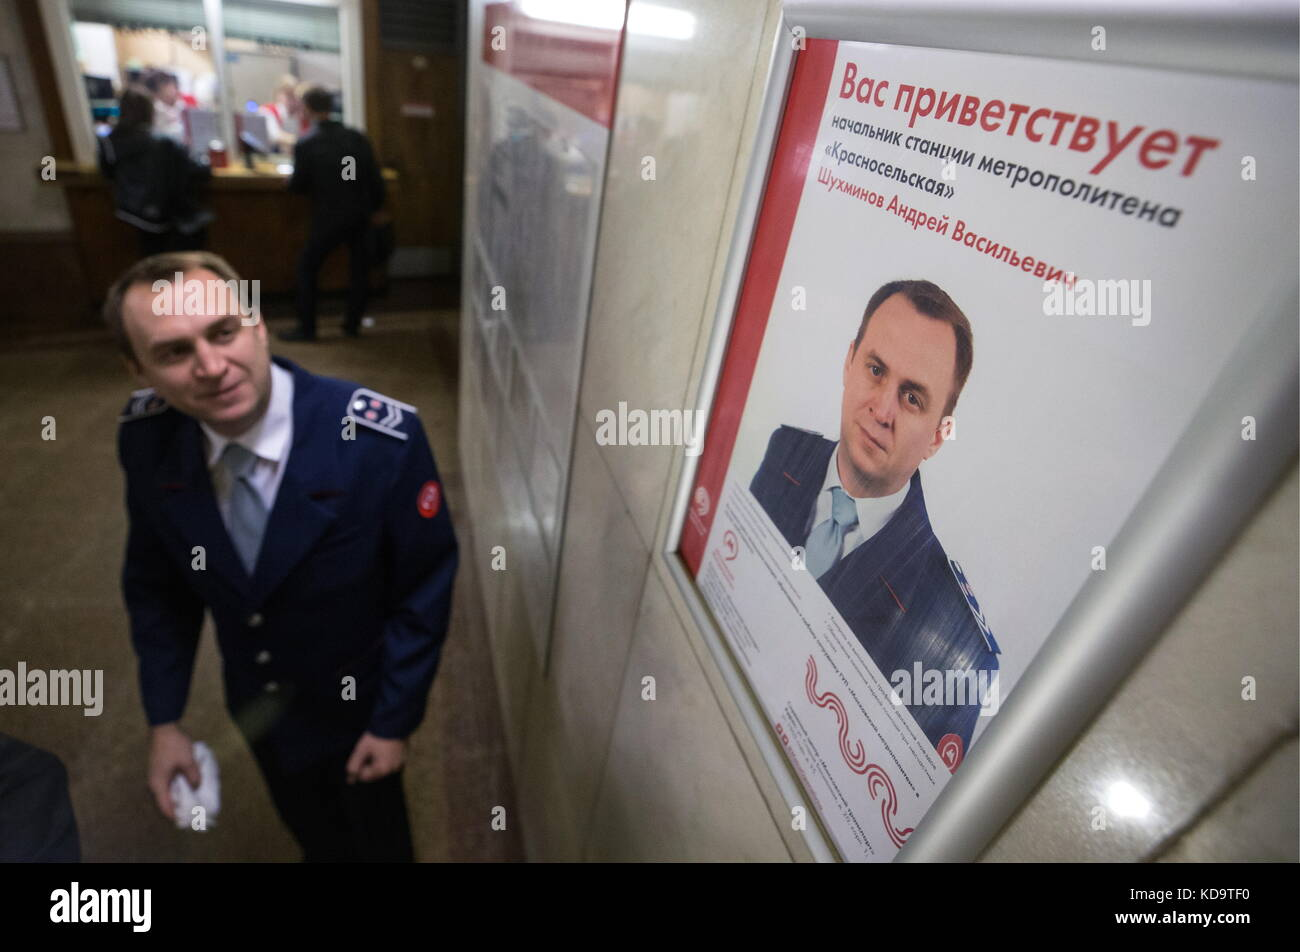 Moscow, Russia. 11th Oct, 2017. Krasnoselskaya station supervisor Andrei Shukhminov looks at a poster with a greeting - Stock Image